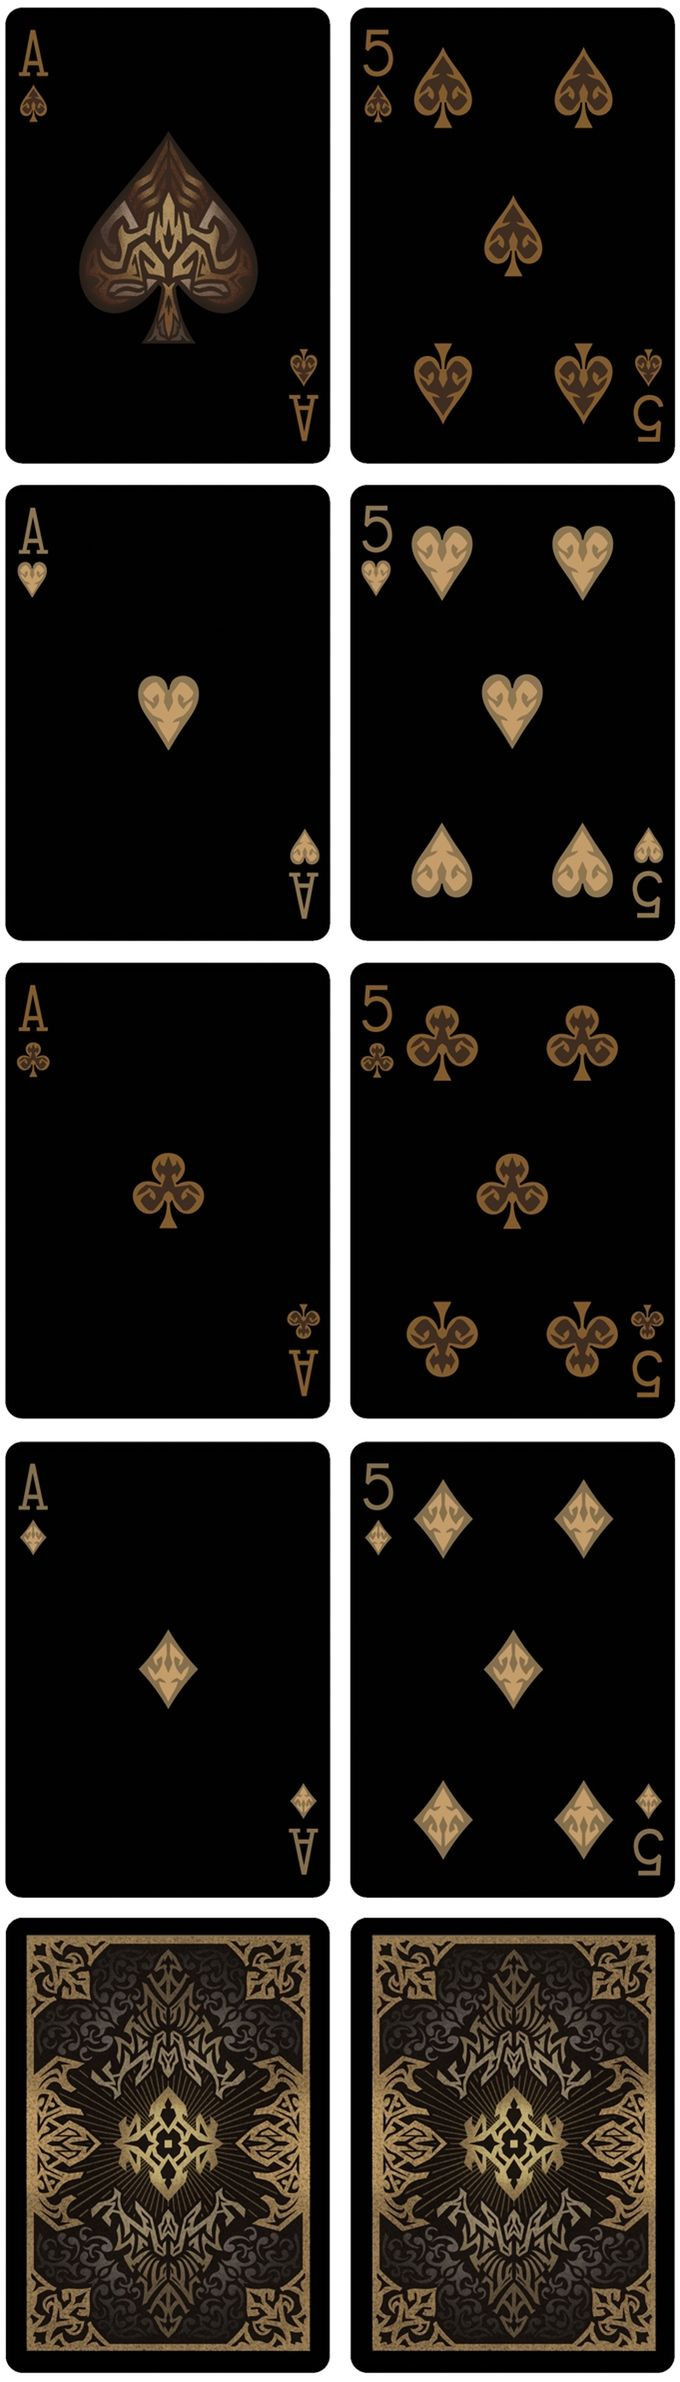 """Bicycle Natural Disasters """"Earthquake"""" Playing Cards by Collectable Playing Cards. Aces and pip card details. Printed by USPC under the Bicycle brand."""